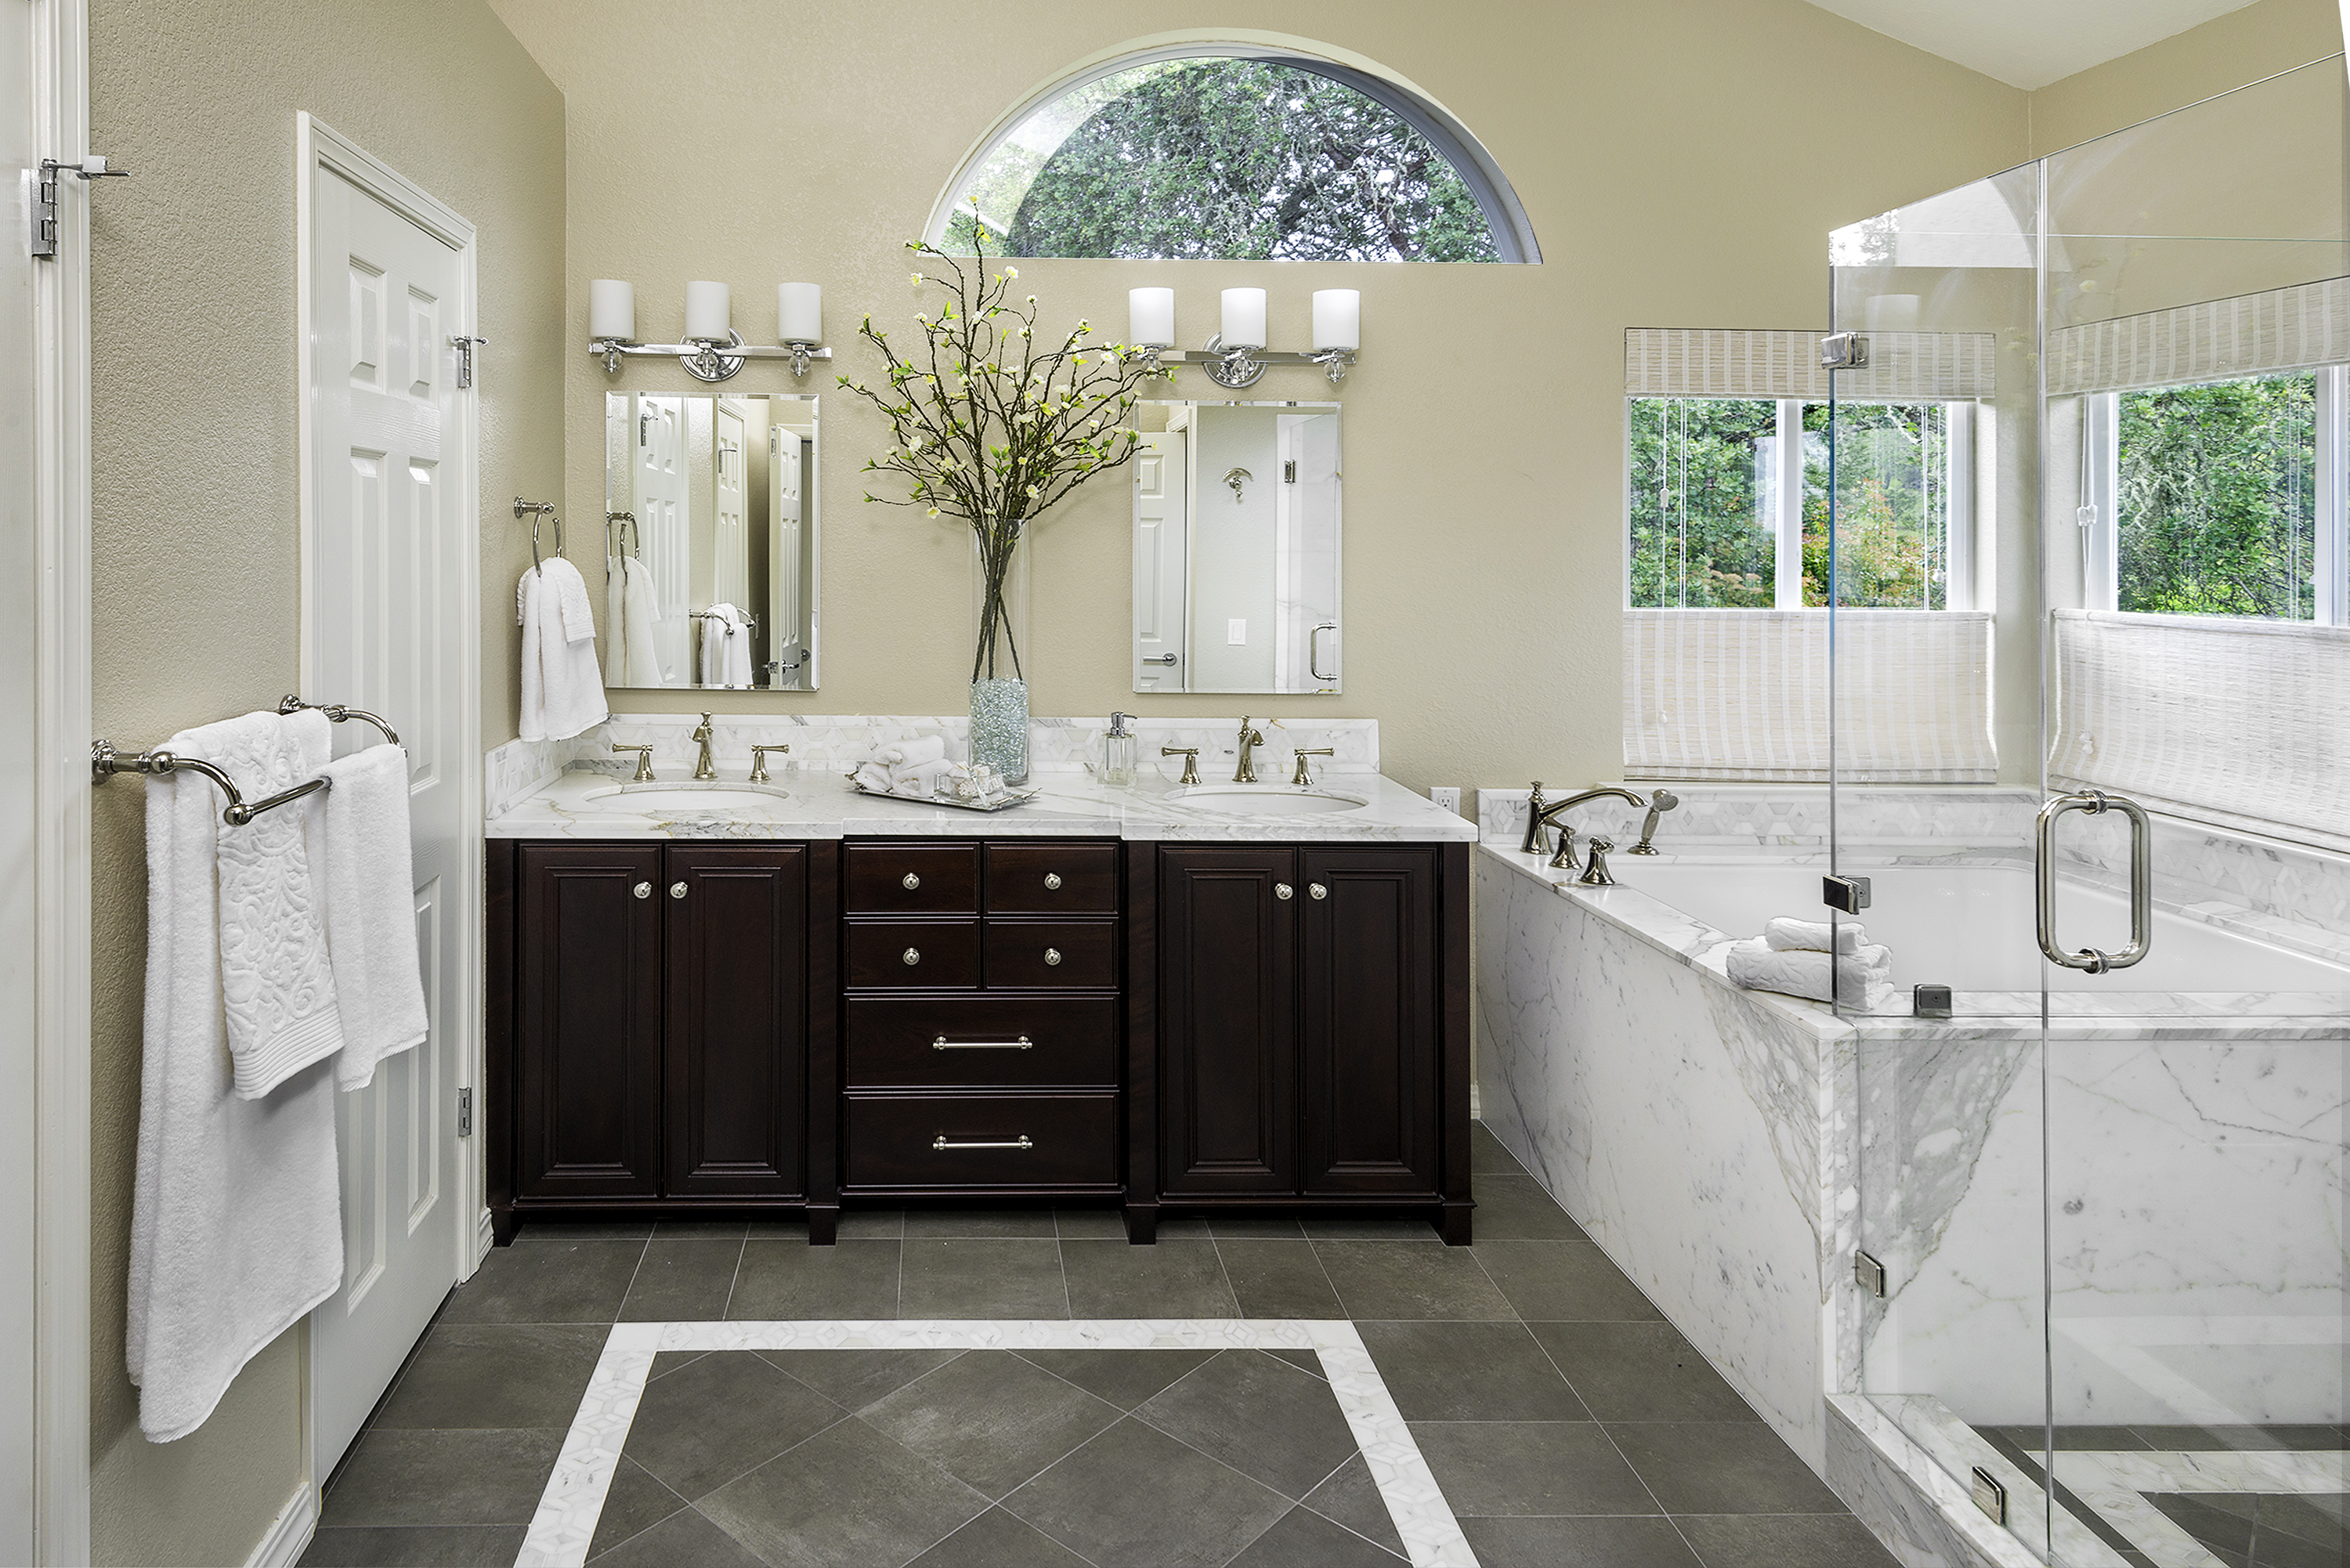 Interior Design Bathroom | Santa Rosa Interiors